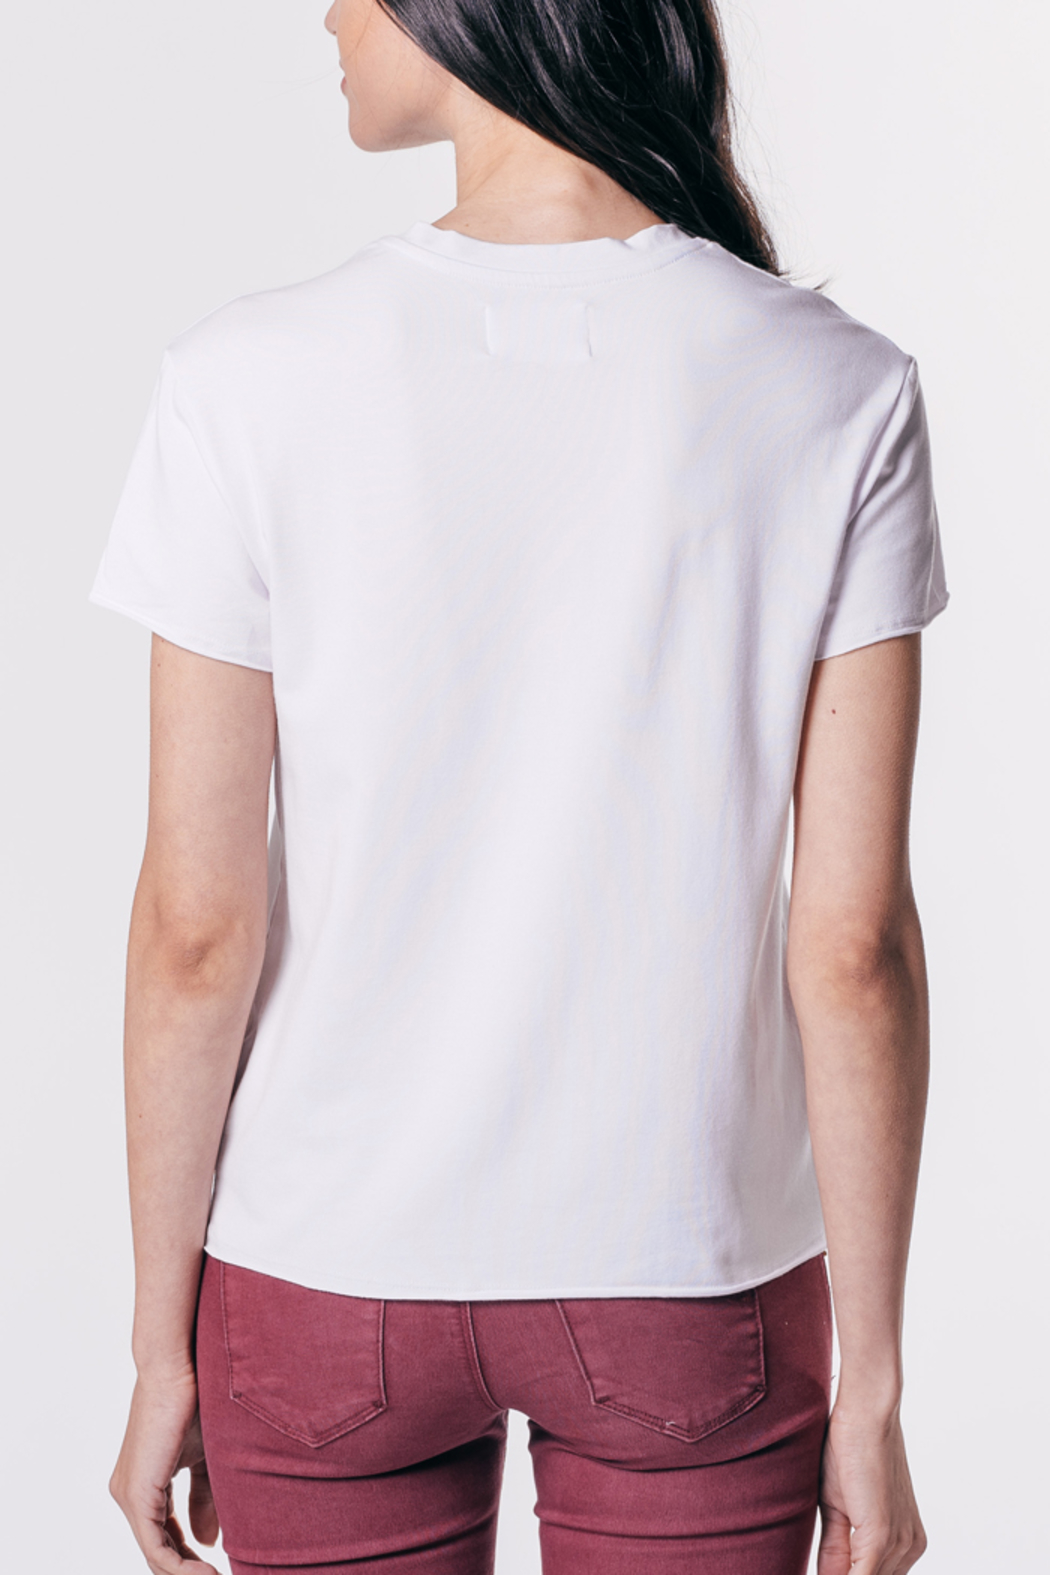 Southcott Threads SHORT SLEEVE CREW T-SHIRT - Side Cropped Image